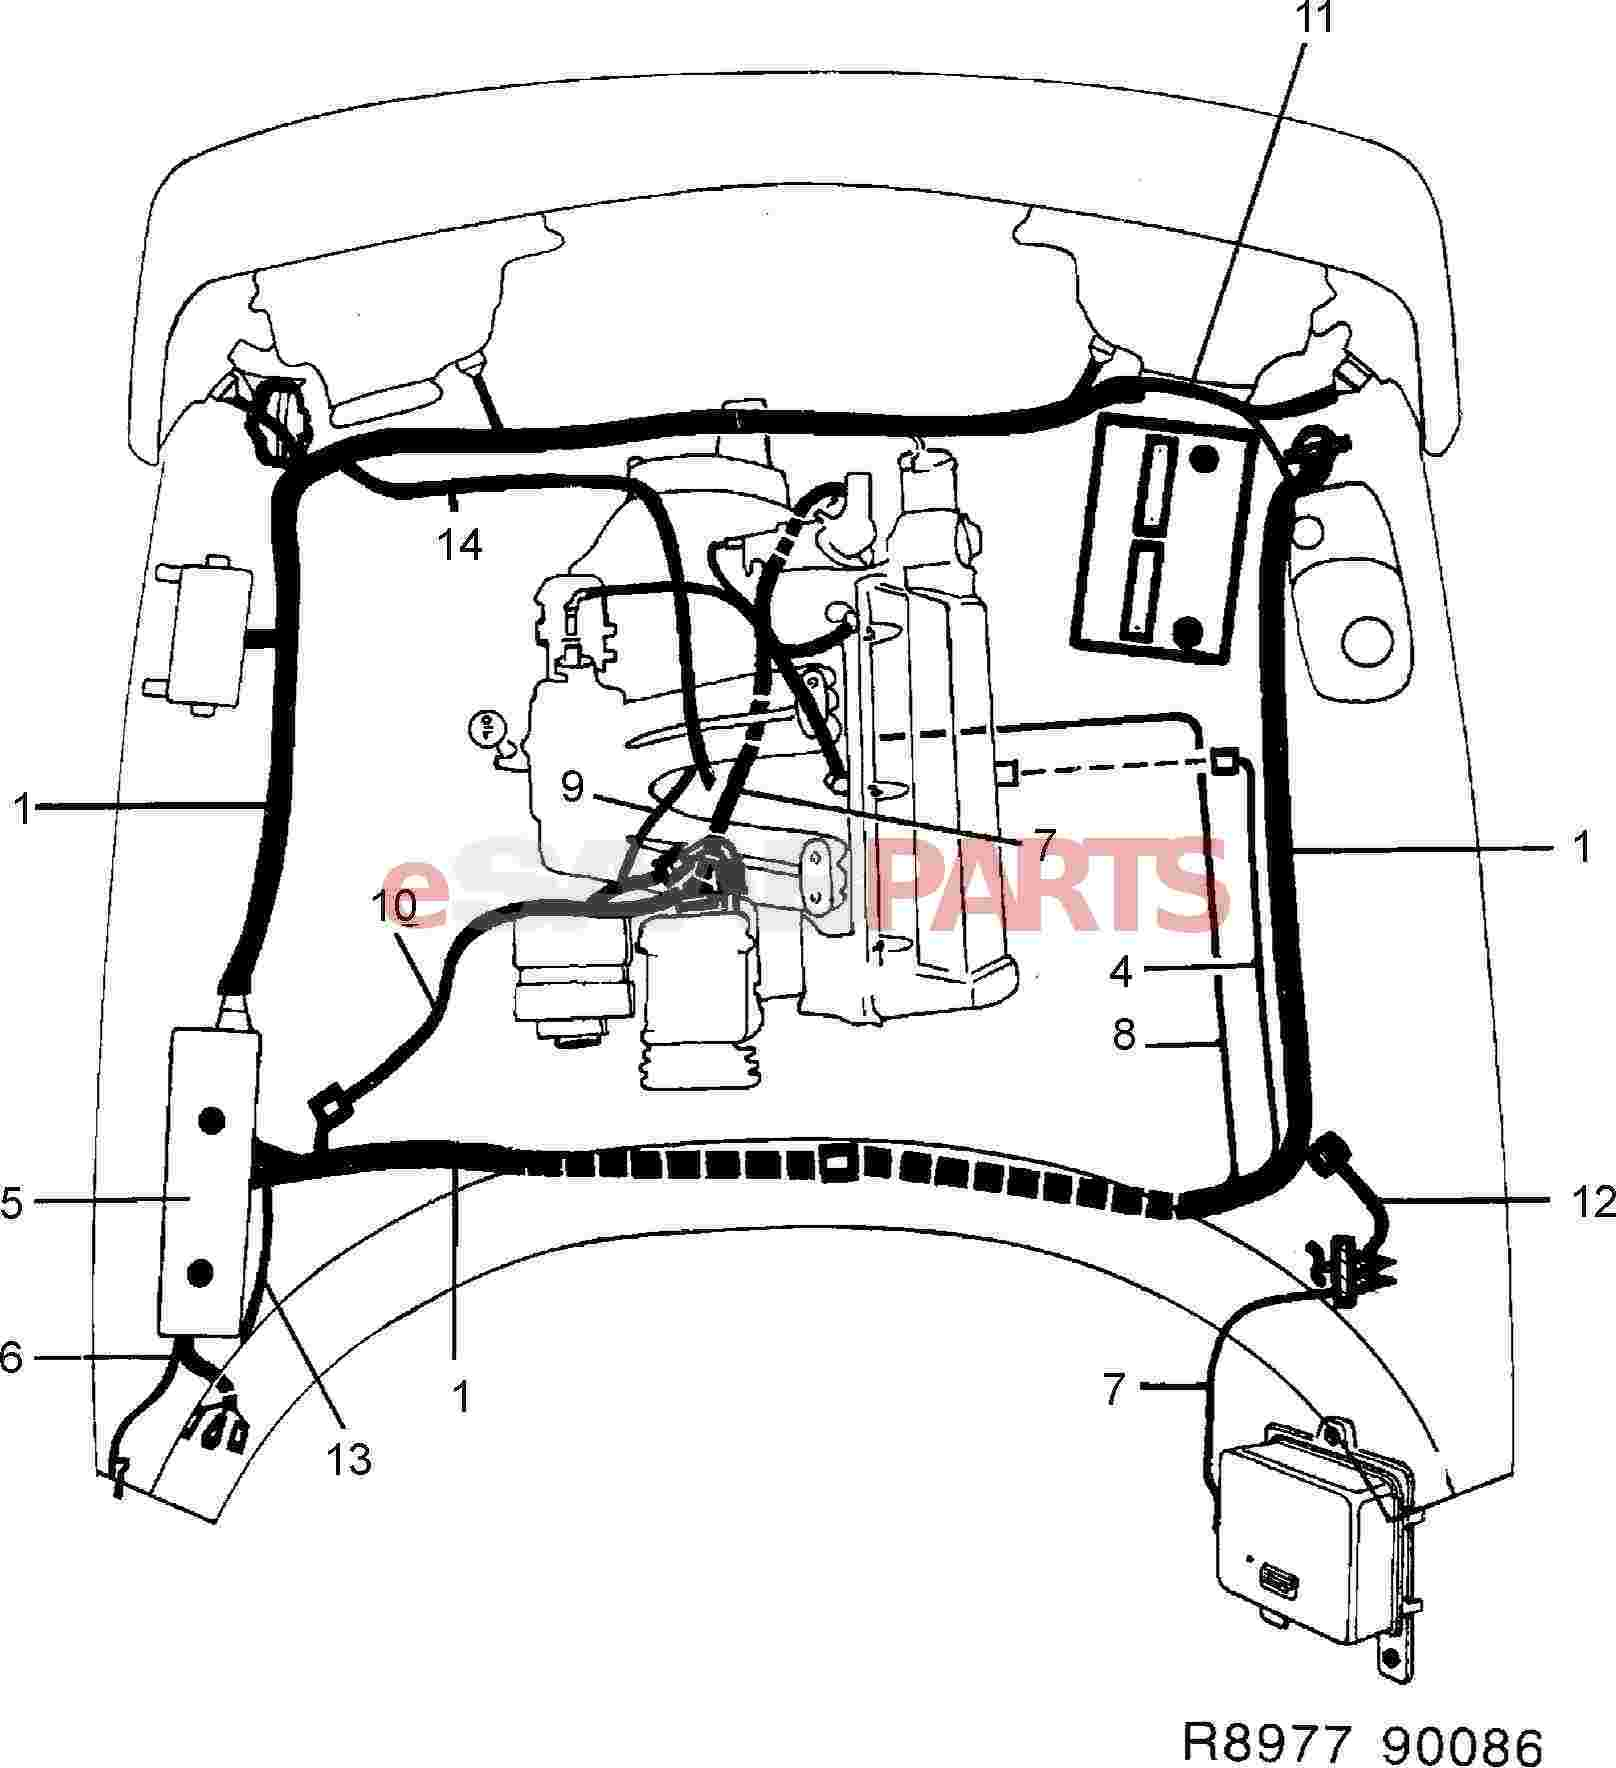 Saab 900 Wiring Harness Painless Wiring Ford 5.0 Maf Iat